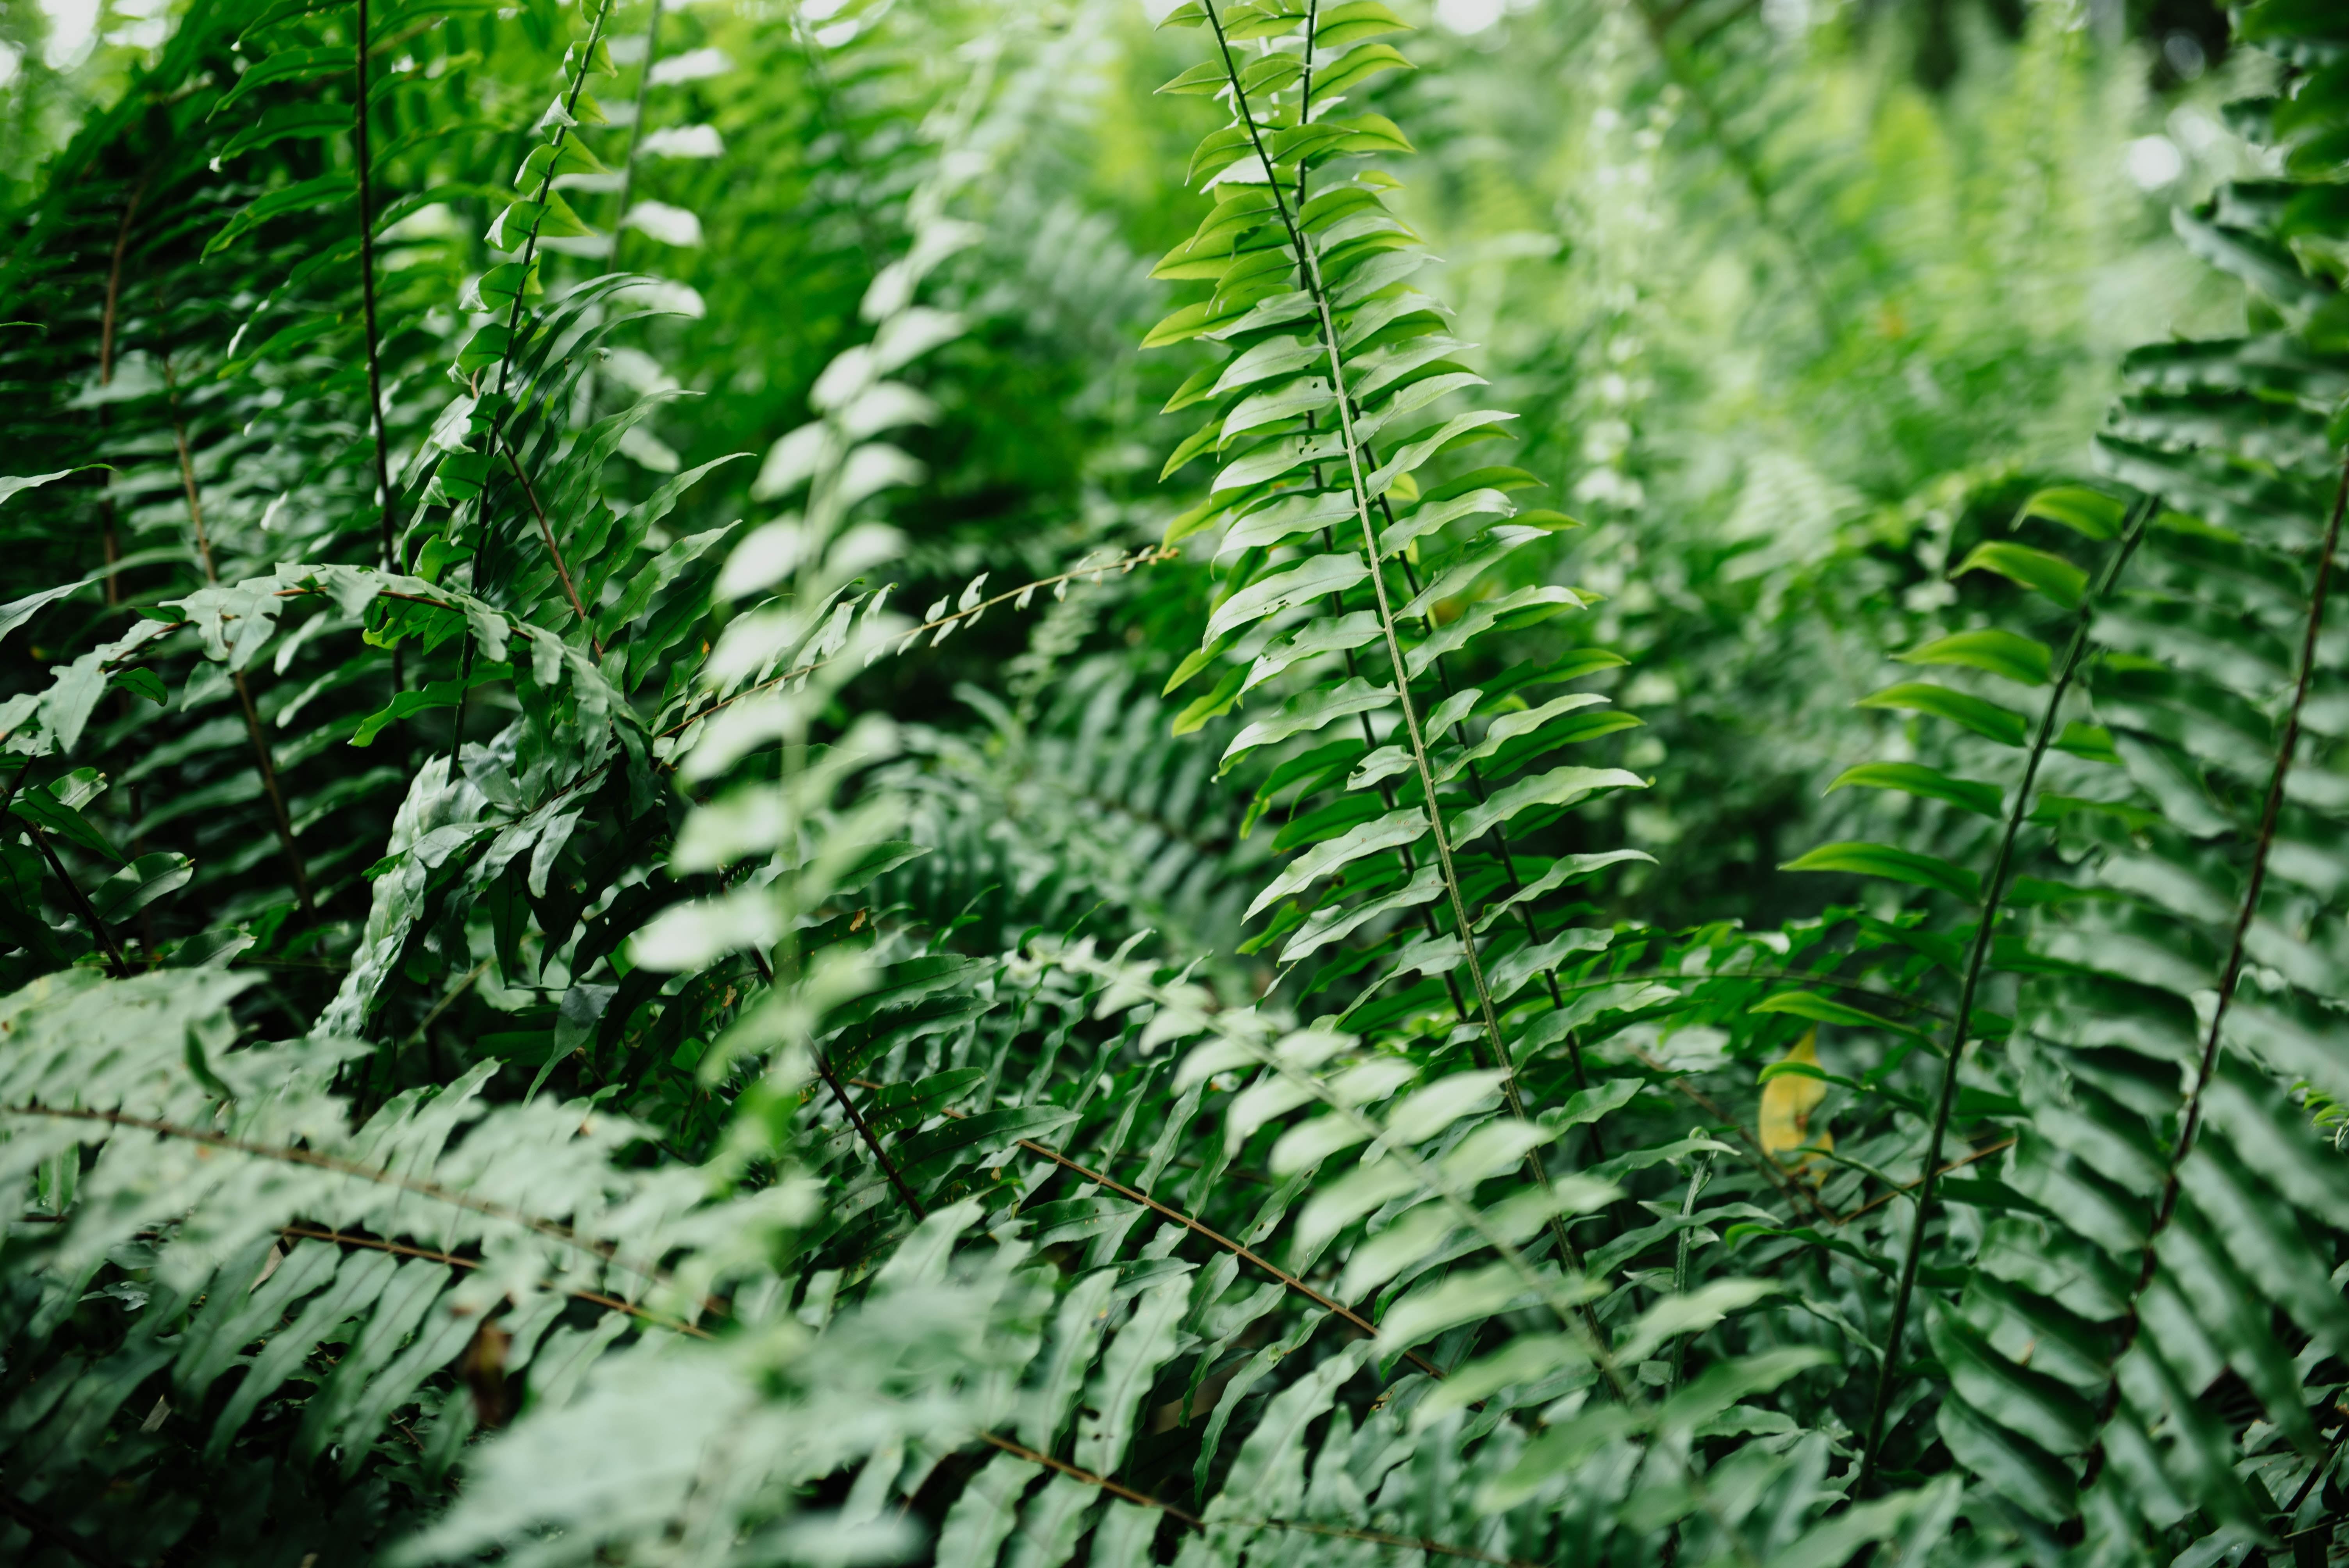 green fern plants at daytime